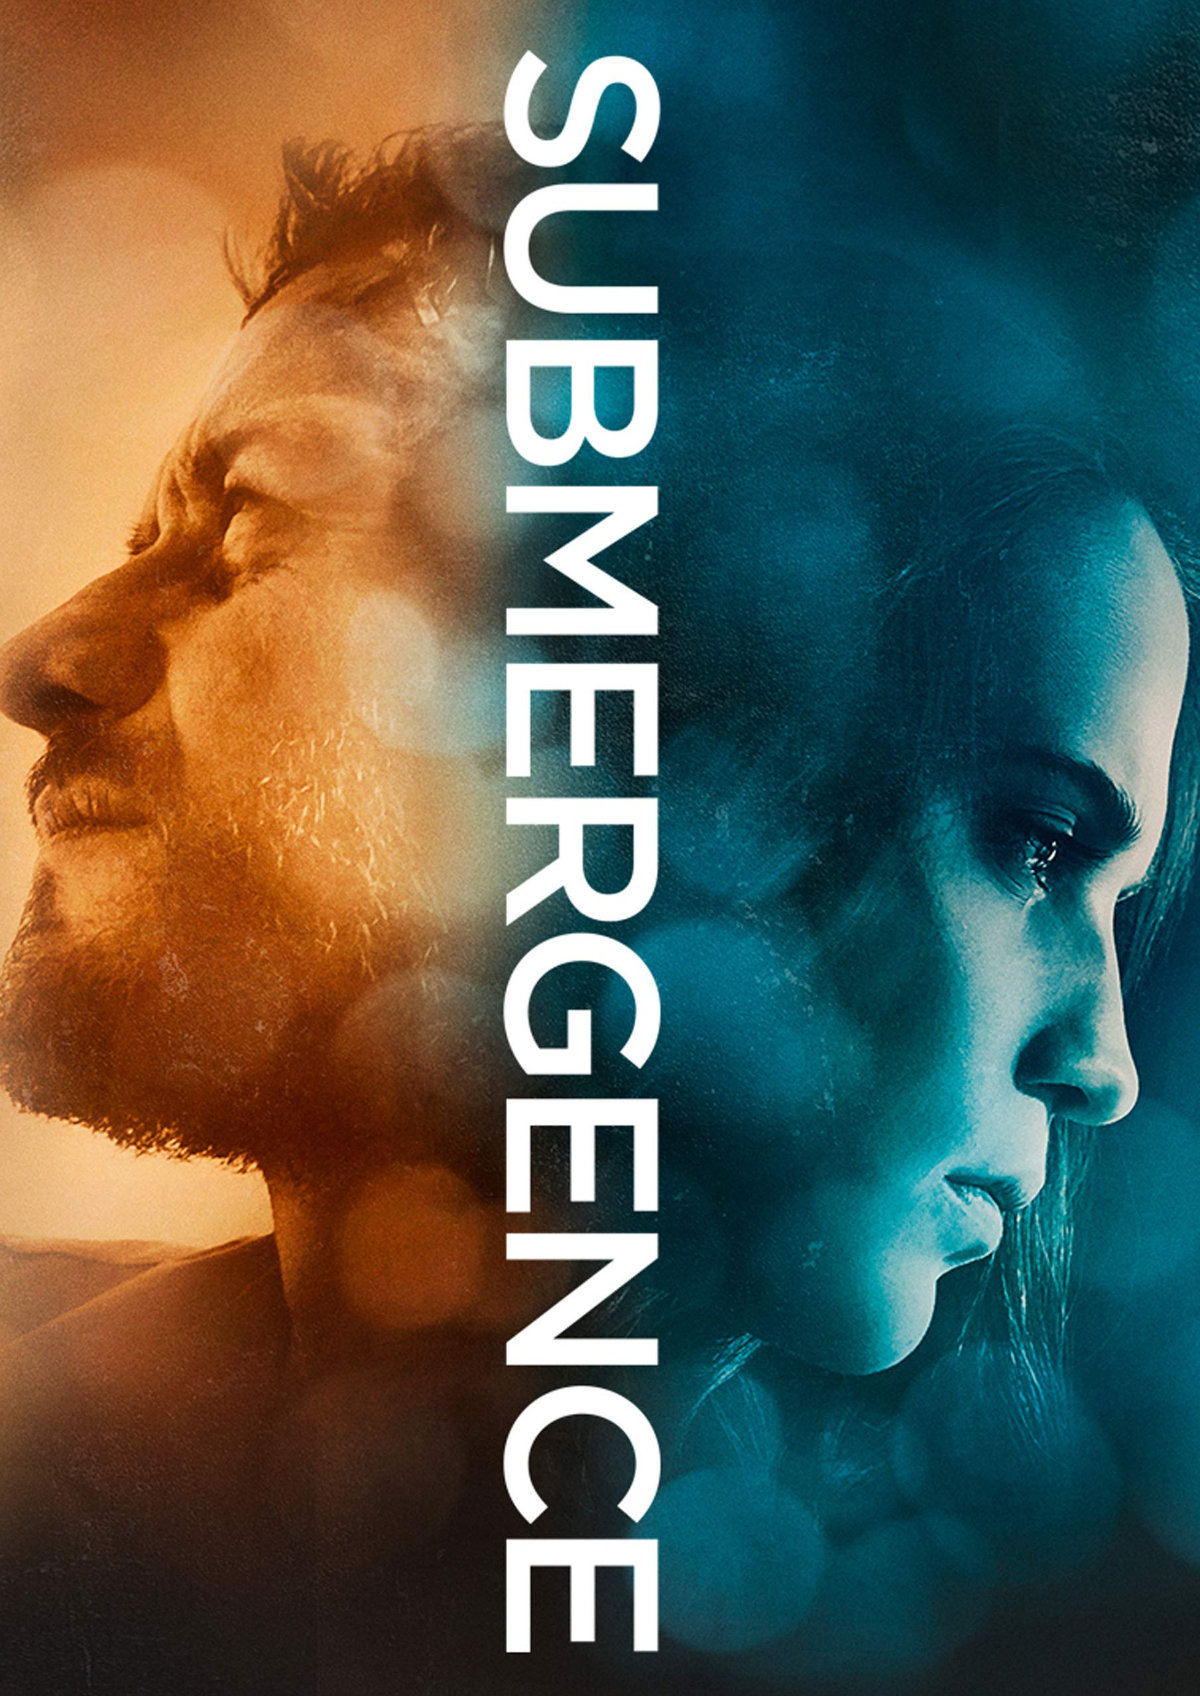 'Submergence' movie poster